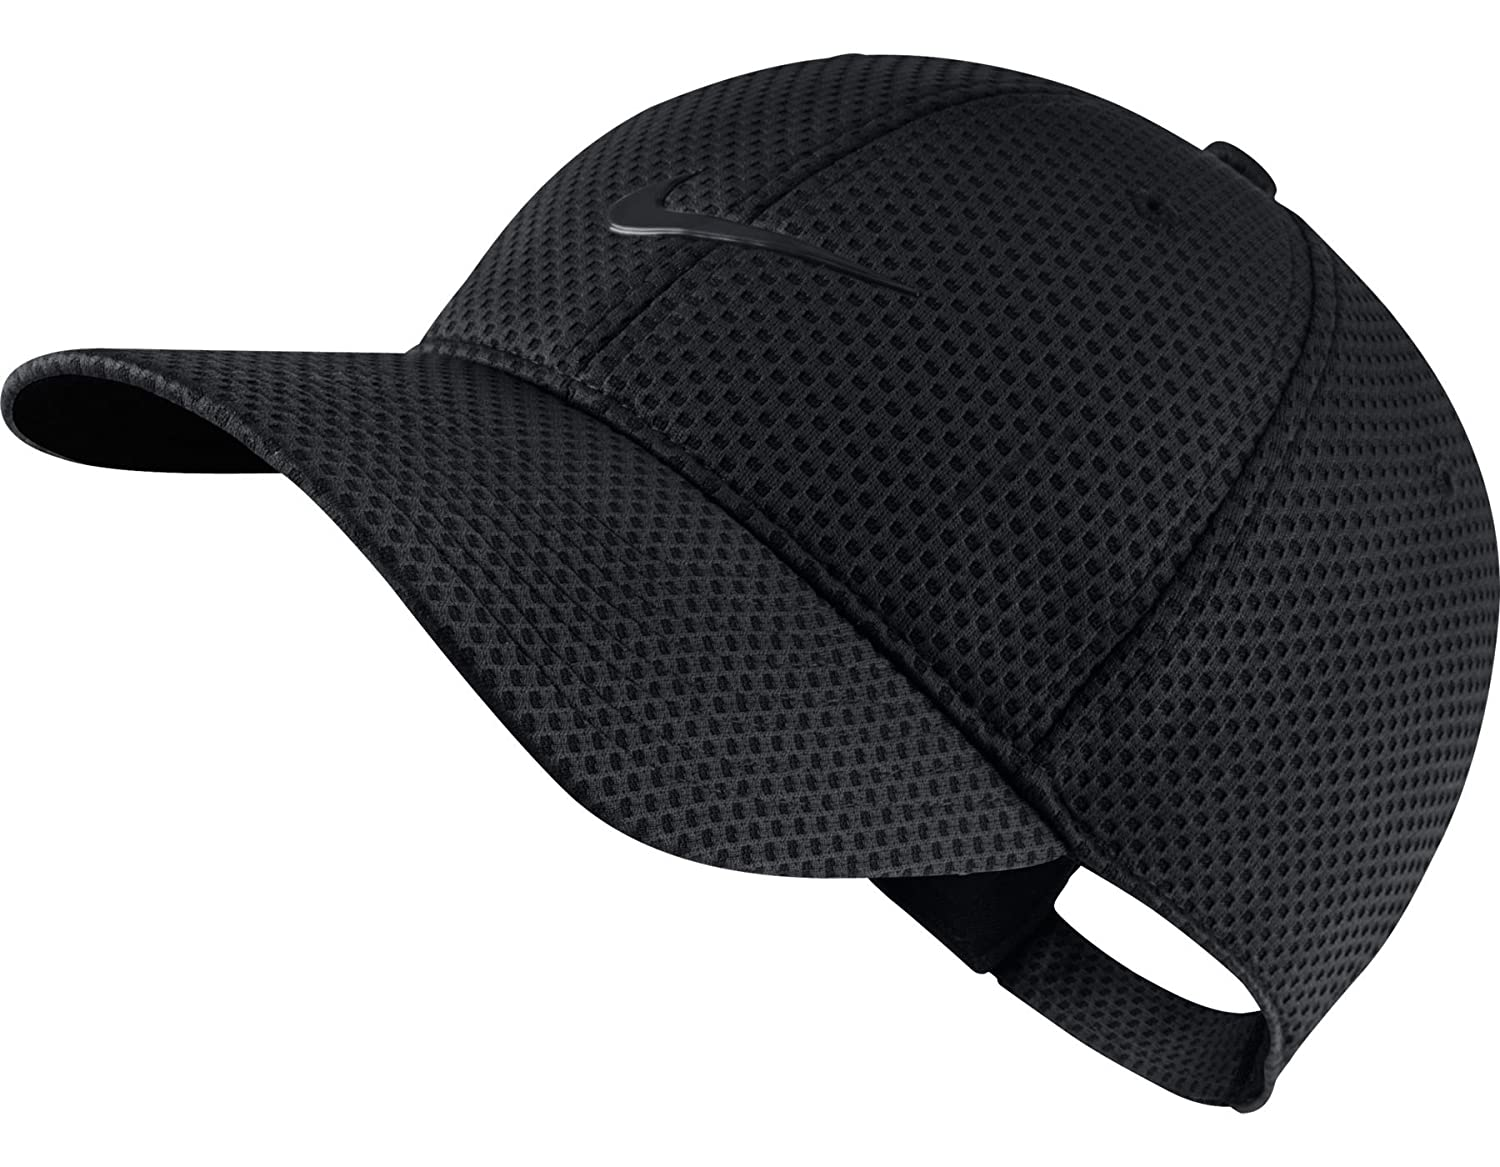 Nike Heritage Dri-Fit Mesh Adjustable Hat Obsidian Black Black   Amazon.co.uk  Clothing 6eaa2d6dea30